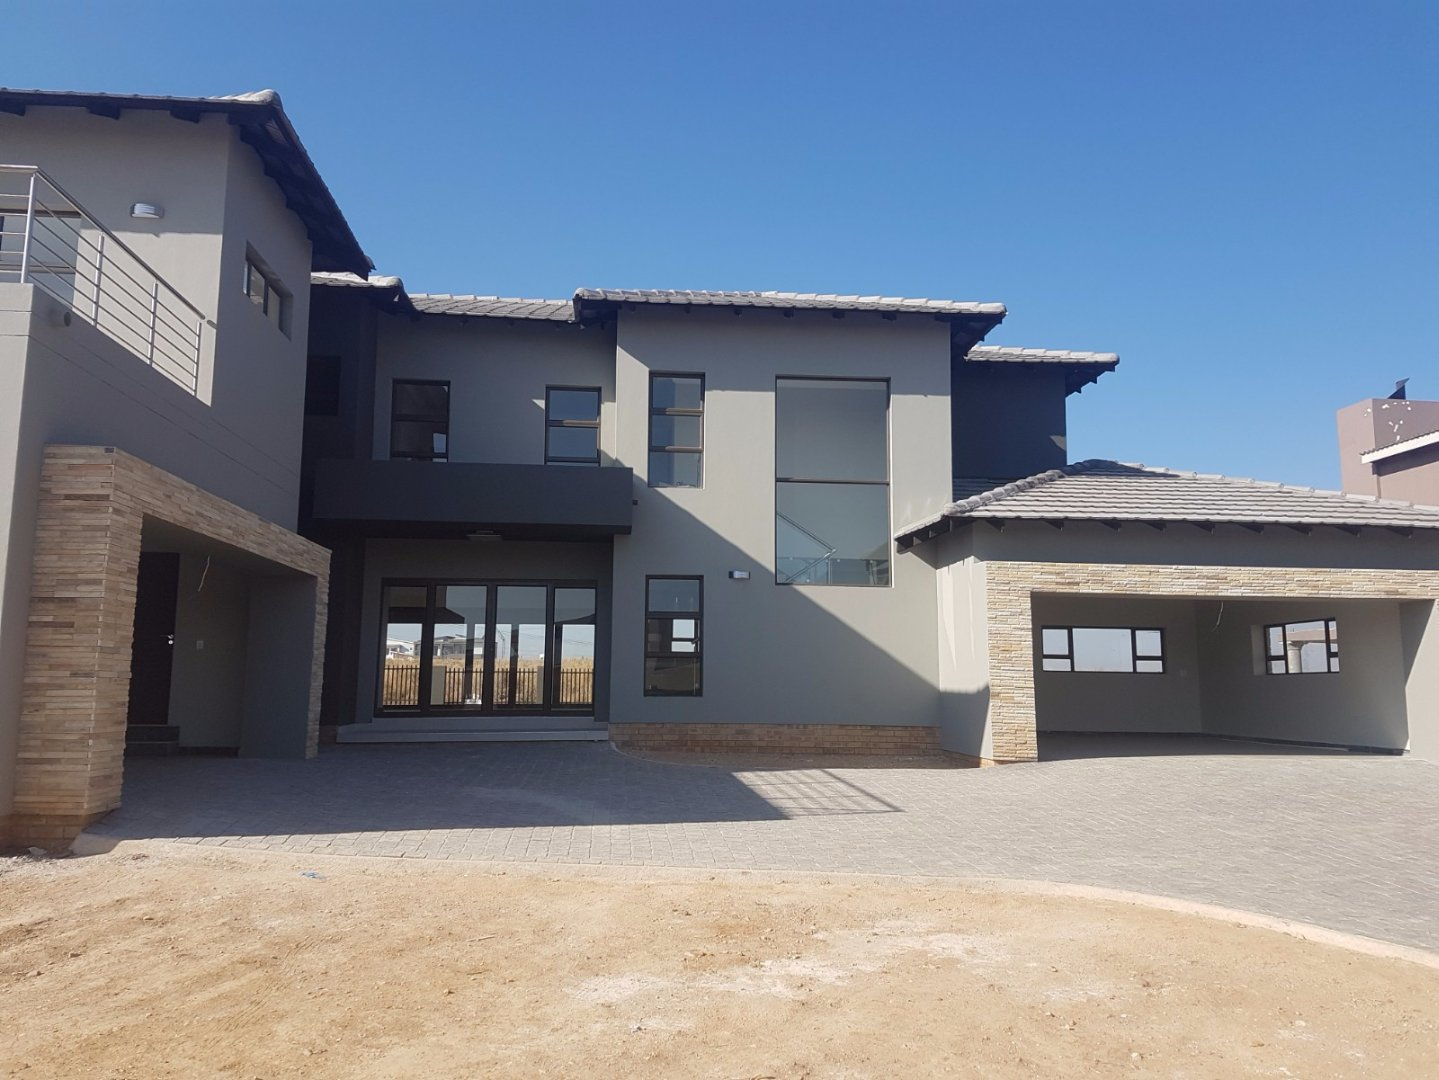 Eye Of Africa Estate property for sale. Ref No: 13523027. Picture no 2